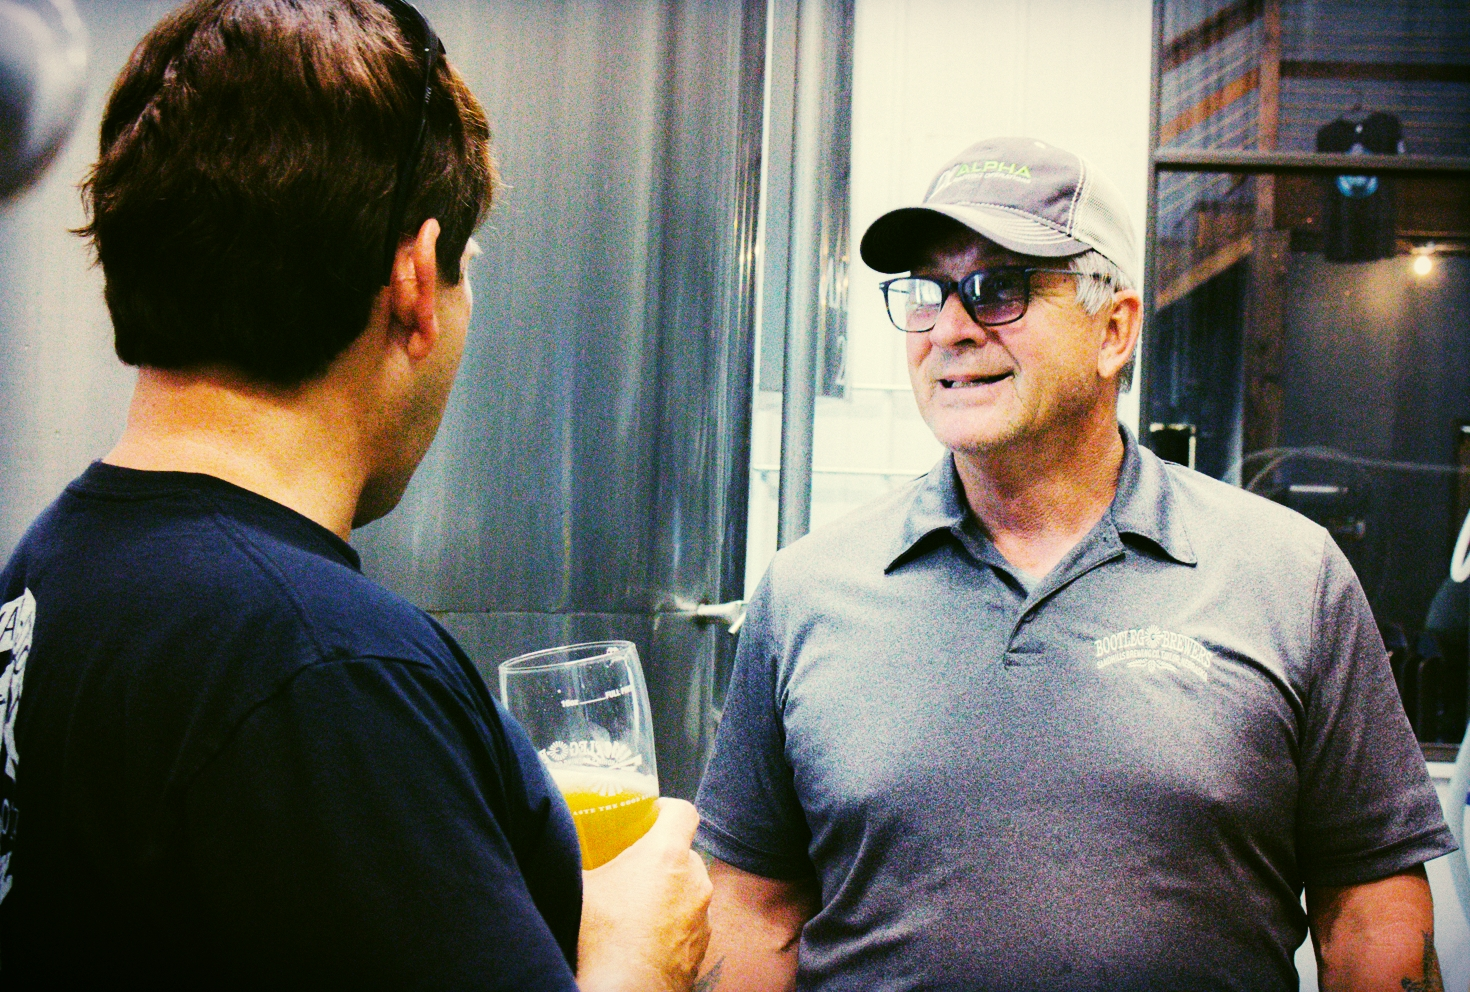 Getting a tour of the brewery from Ron was incredible